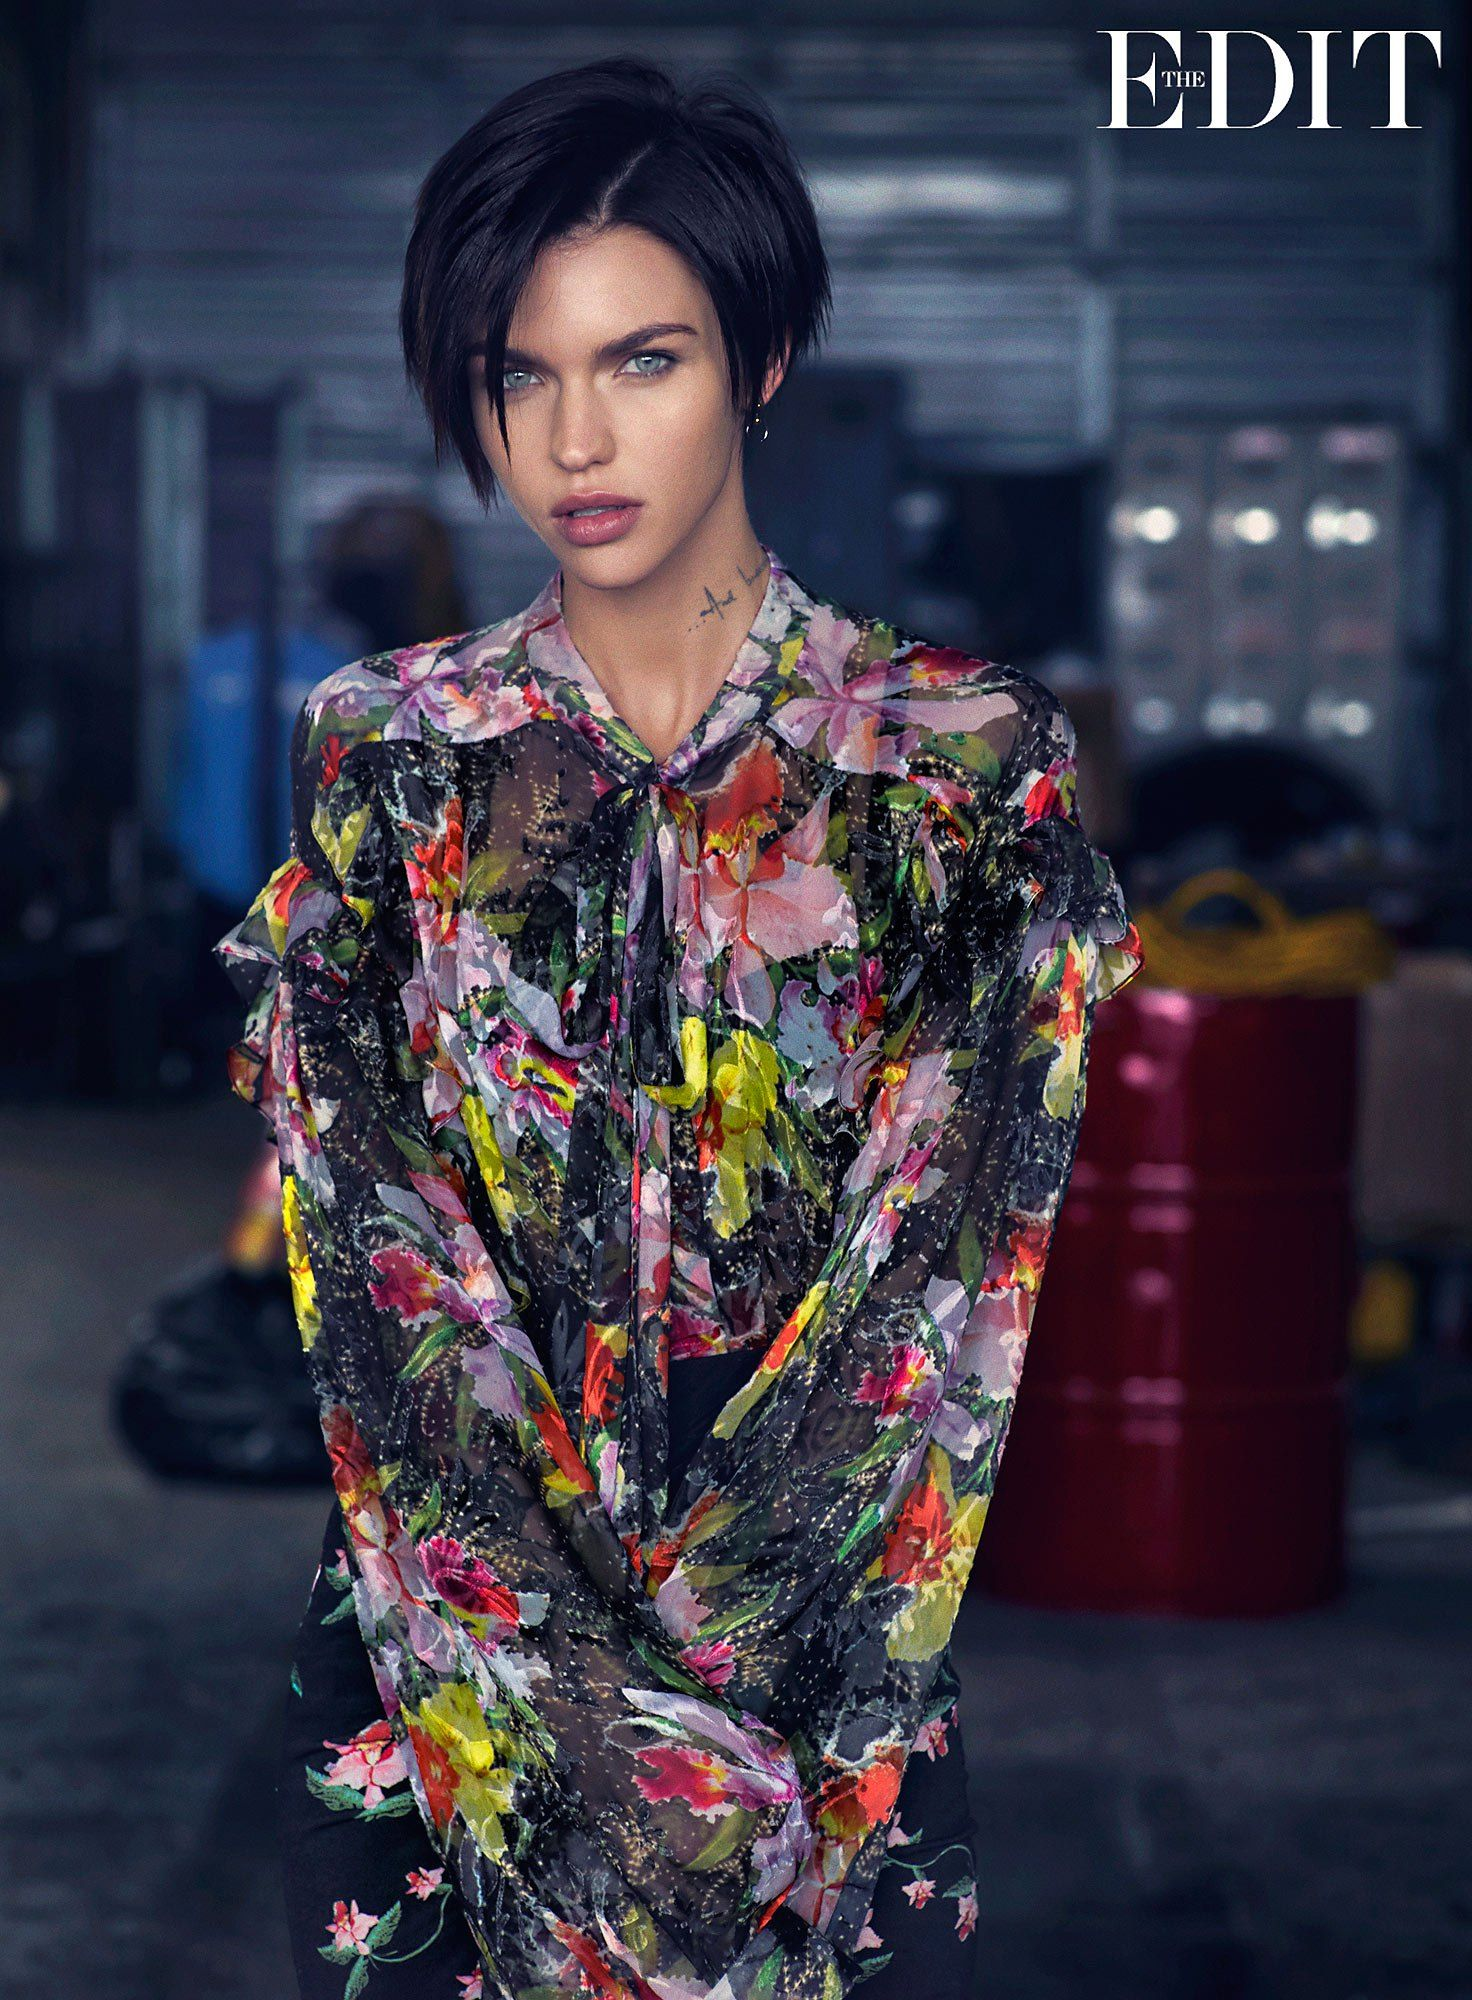 Ruby Rose Is 'Glad' She Didn't Get Gender Reassignment